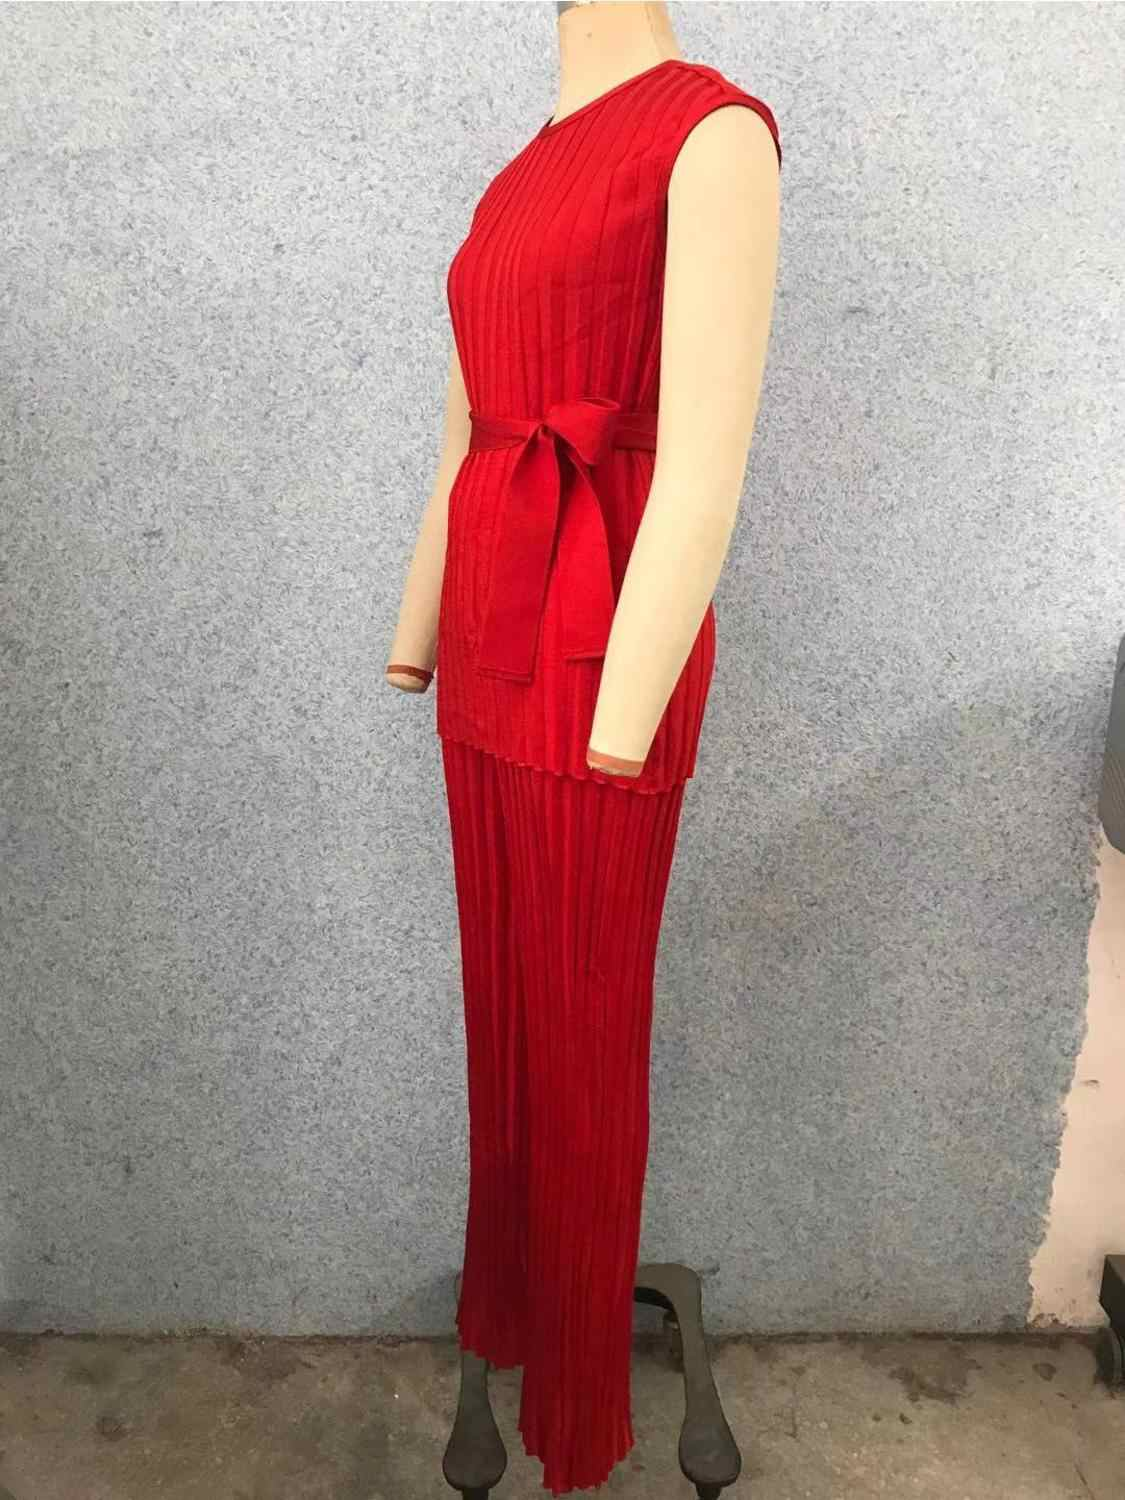 New 2019 Autumn Red Round Neck Sleeveless Tops Solid Color Pit Pattern Waist Thin Tie Set Wide Foot Jumpsuit